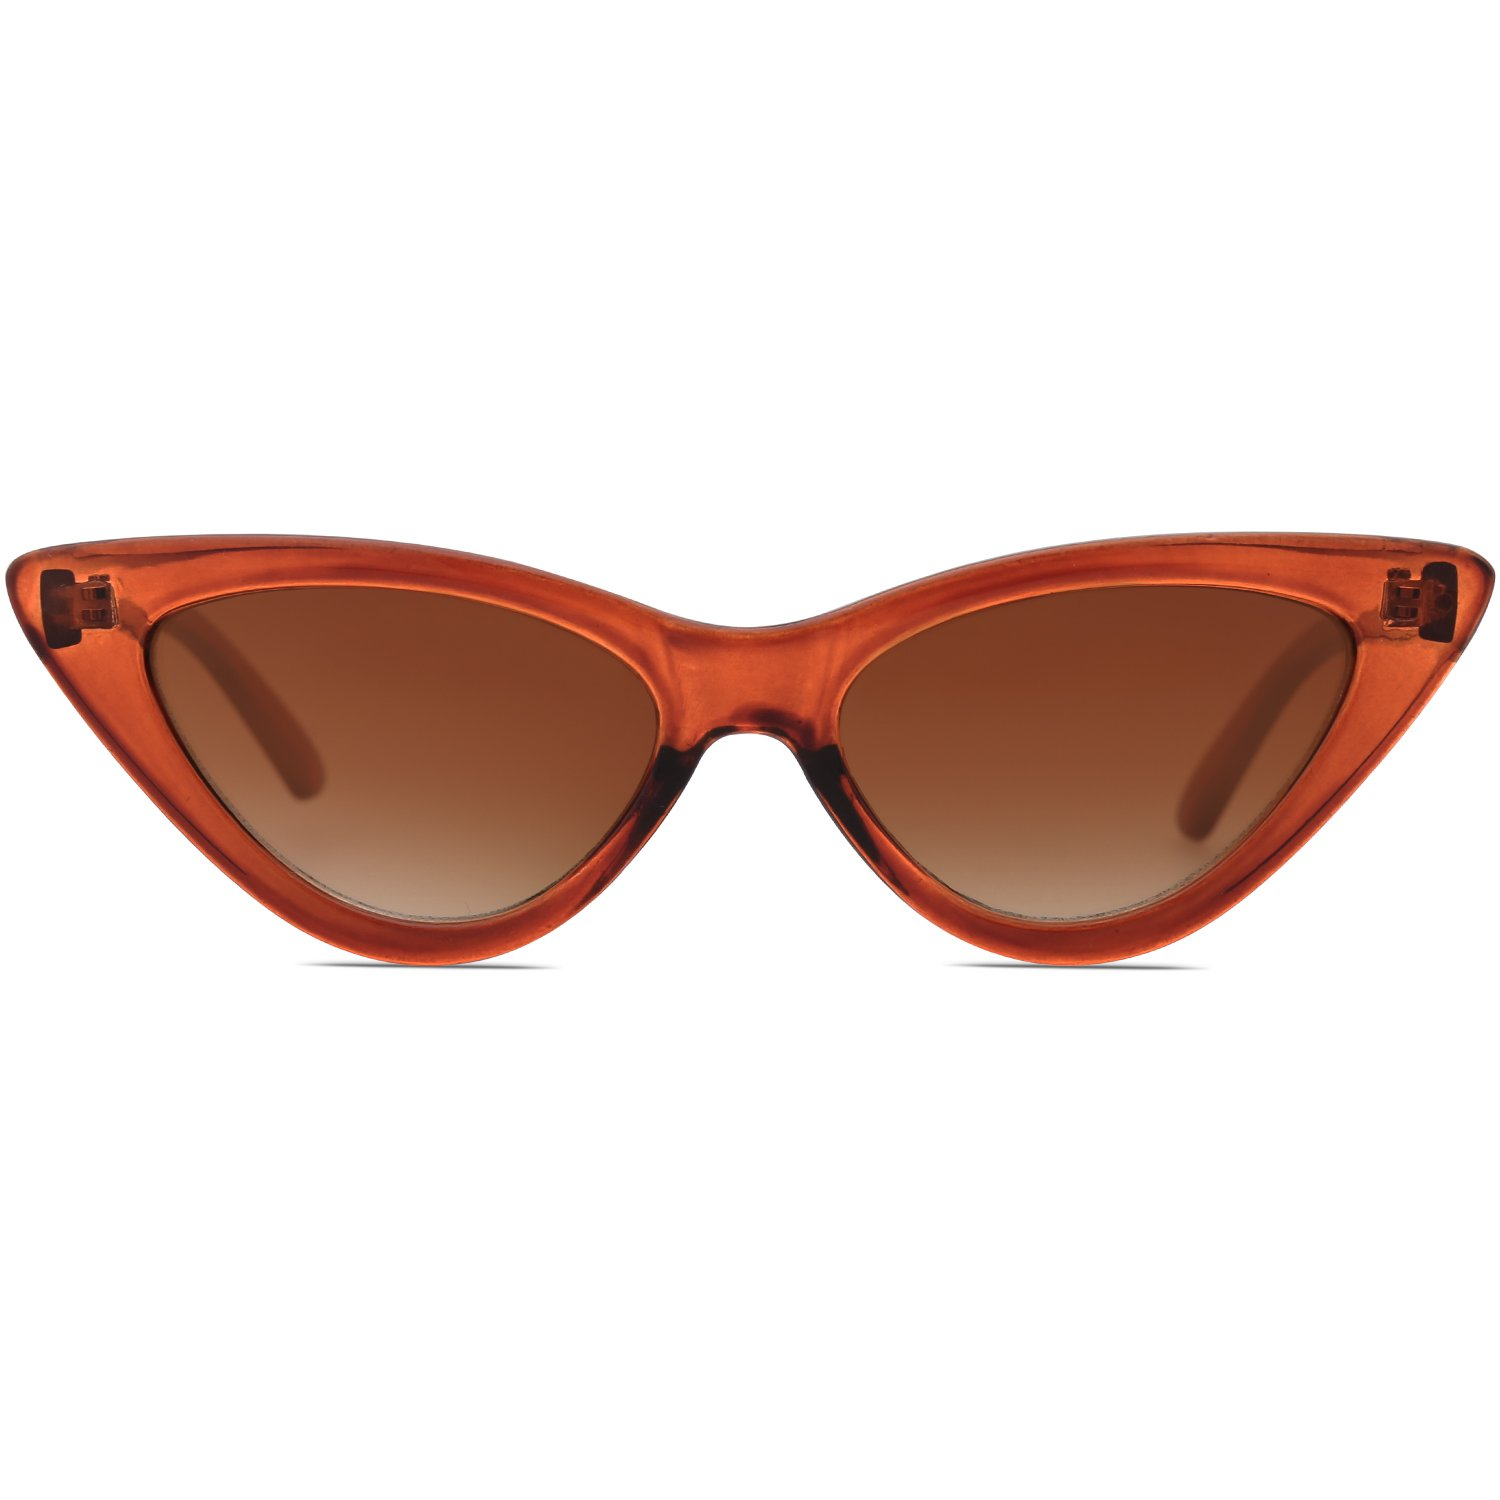 a97e0f6fcf51 SOJOS Retro Vintage Narrow Cat Eye Sunglasses for women Clout Goggles  Plactic Frame Cardi B with Brown Frame Brown Lens  Amazon.in  Clothing    Accessories